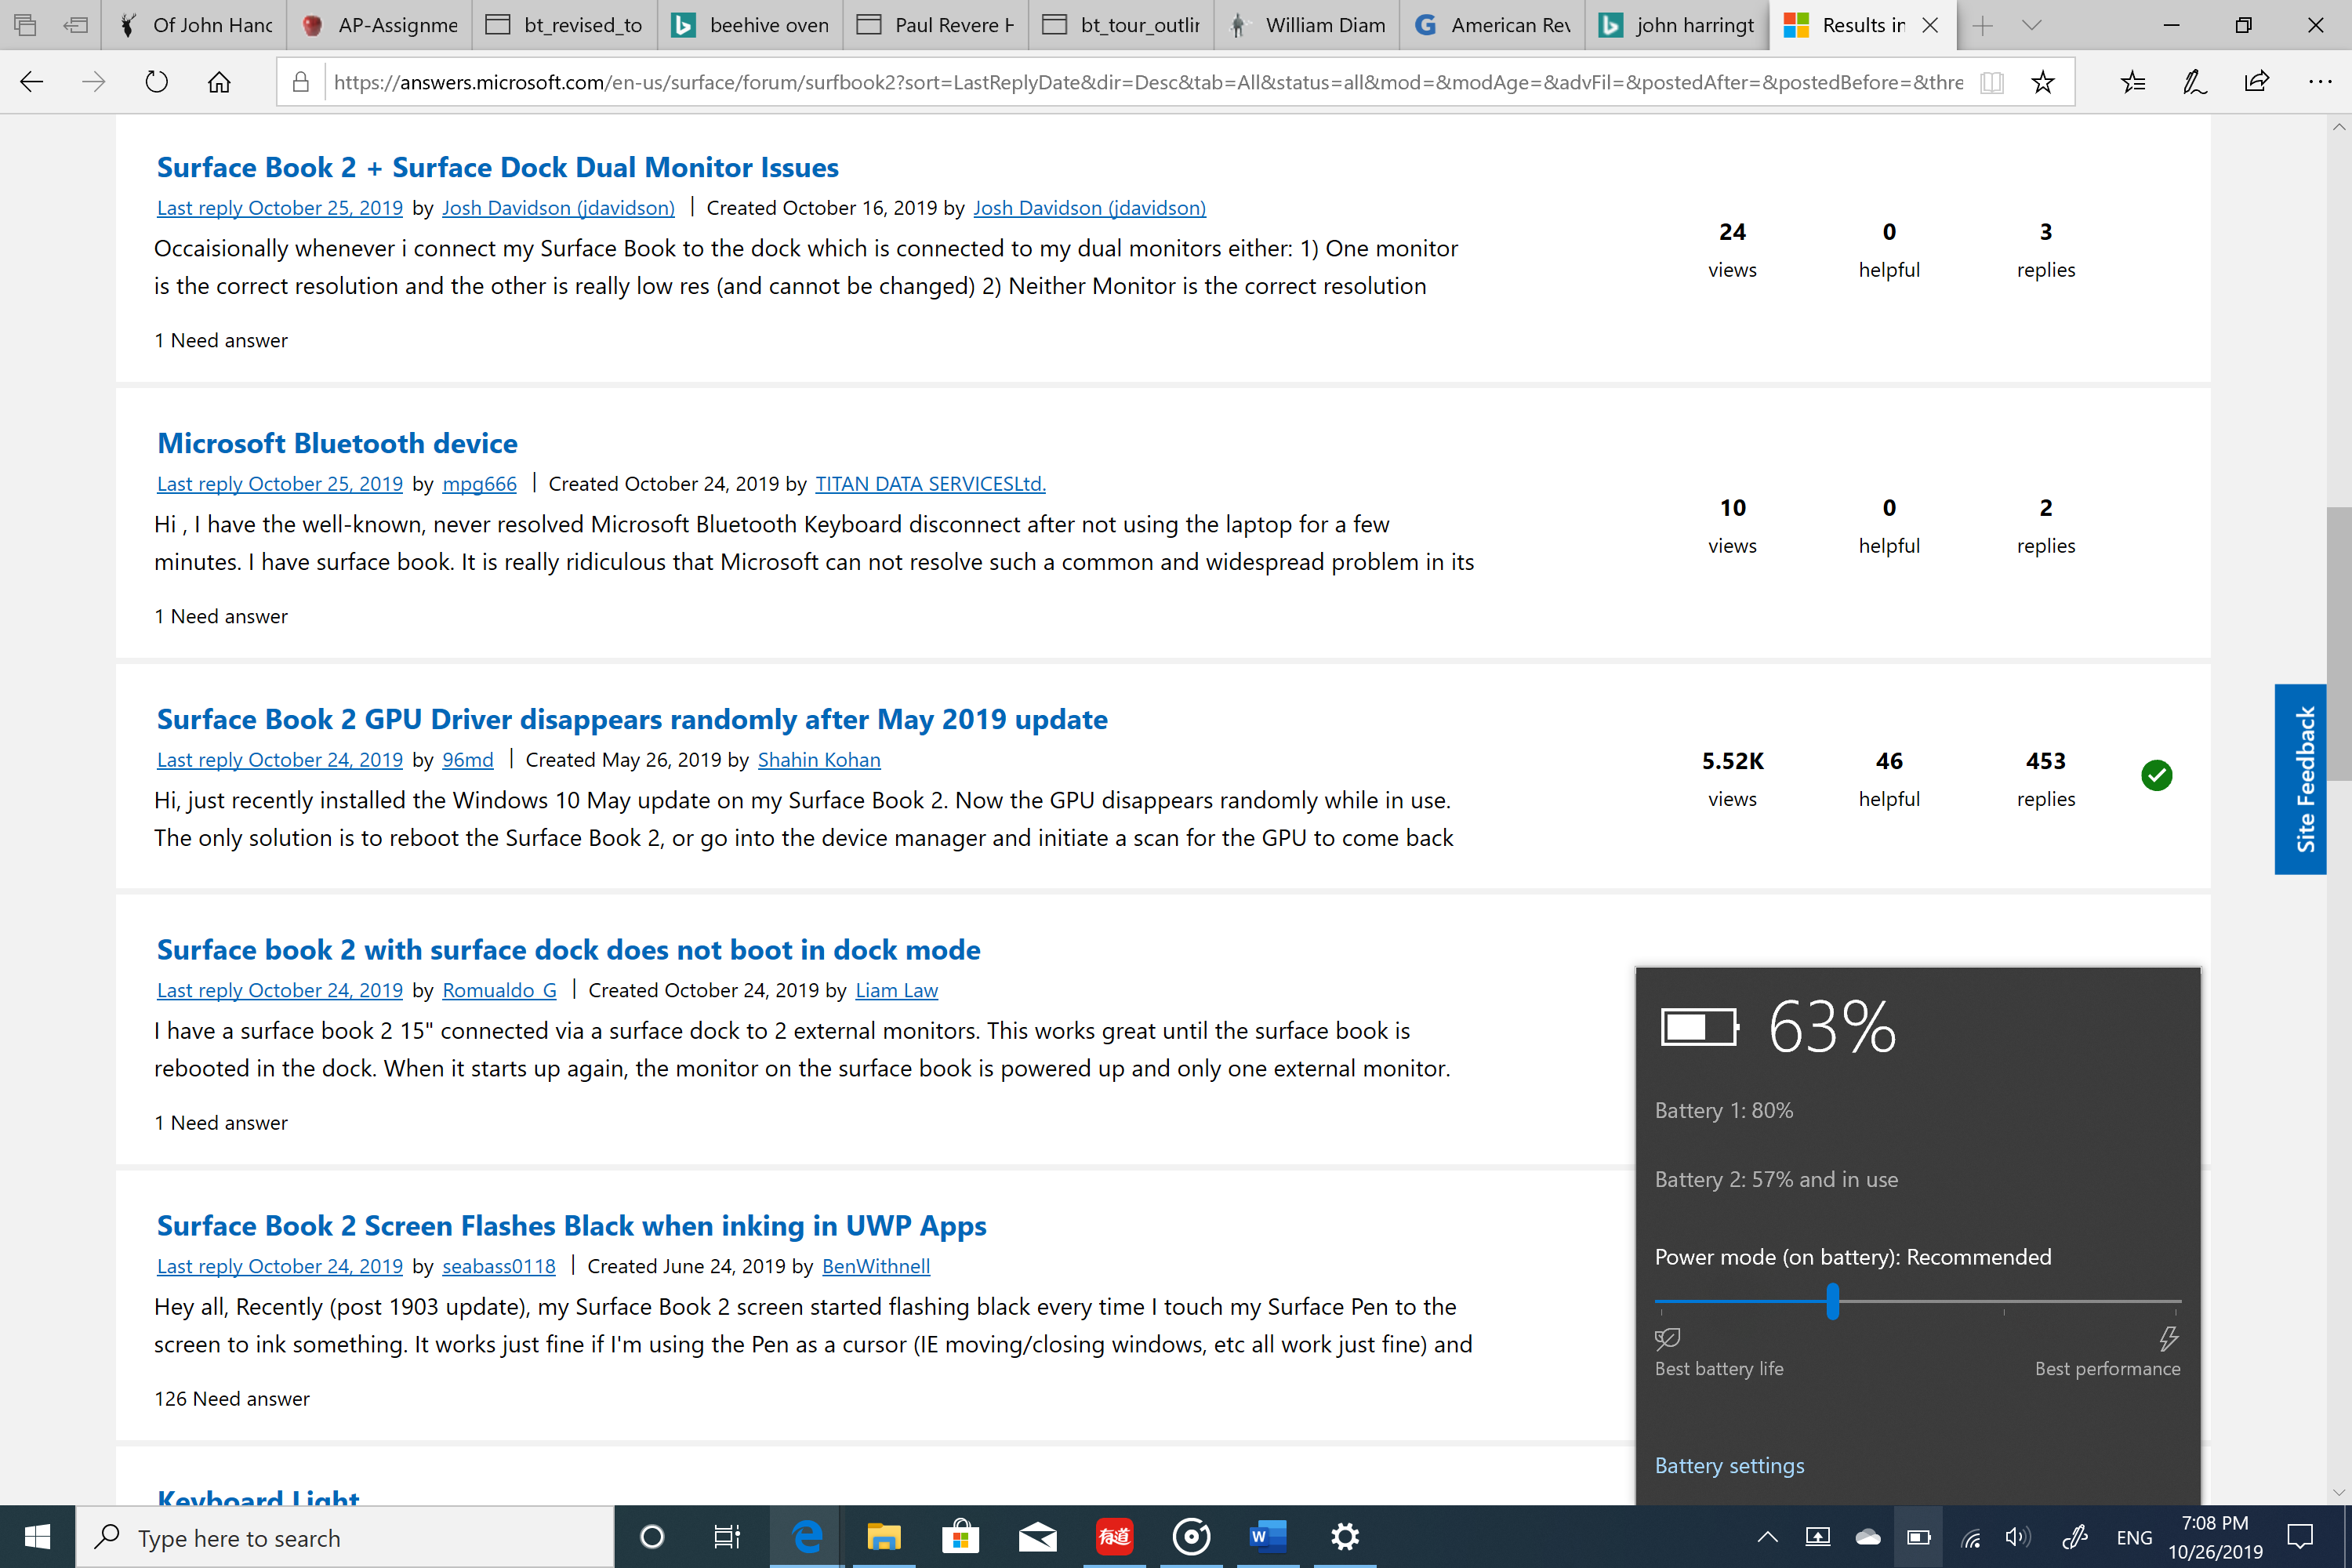 Surface book 2 Battery not in use - Microsoft Community